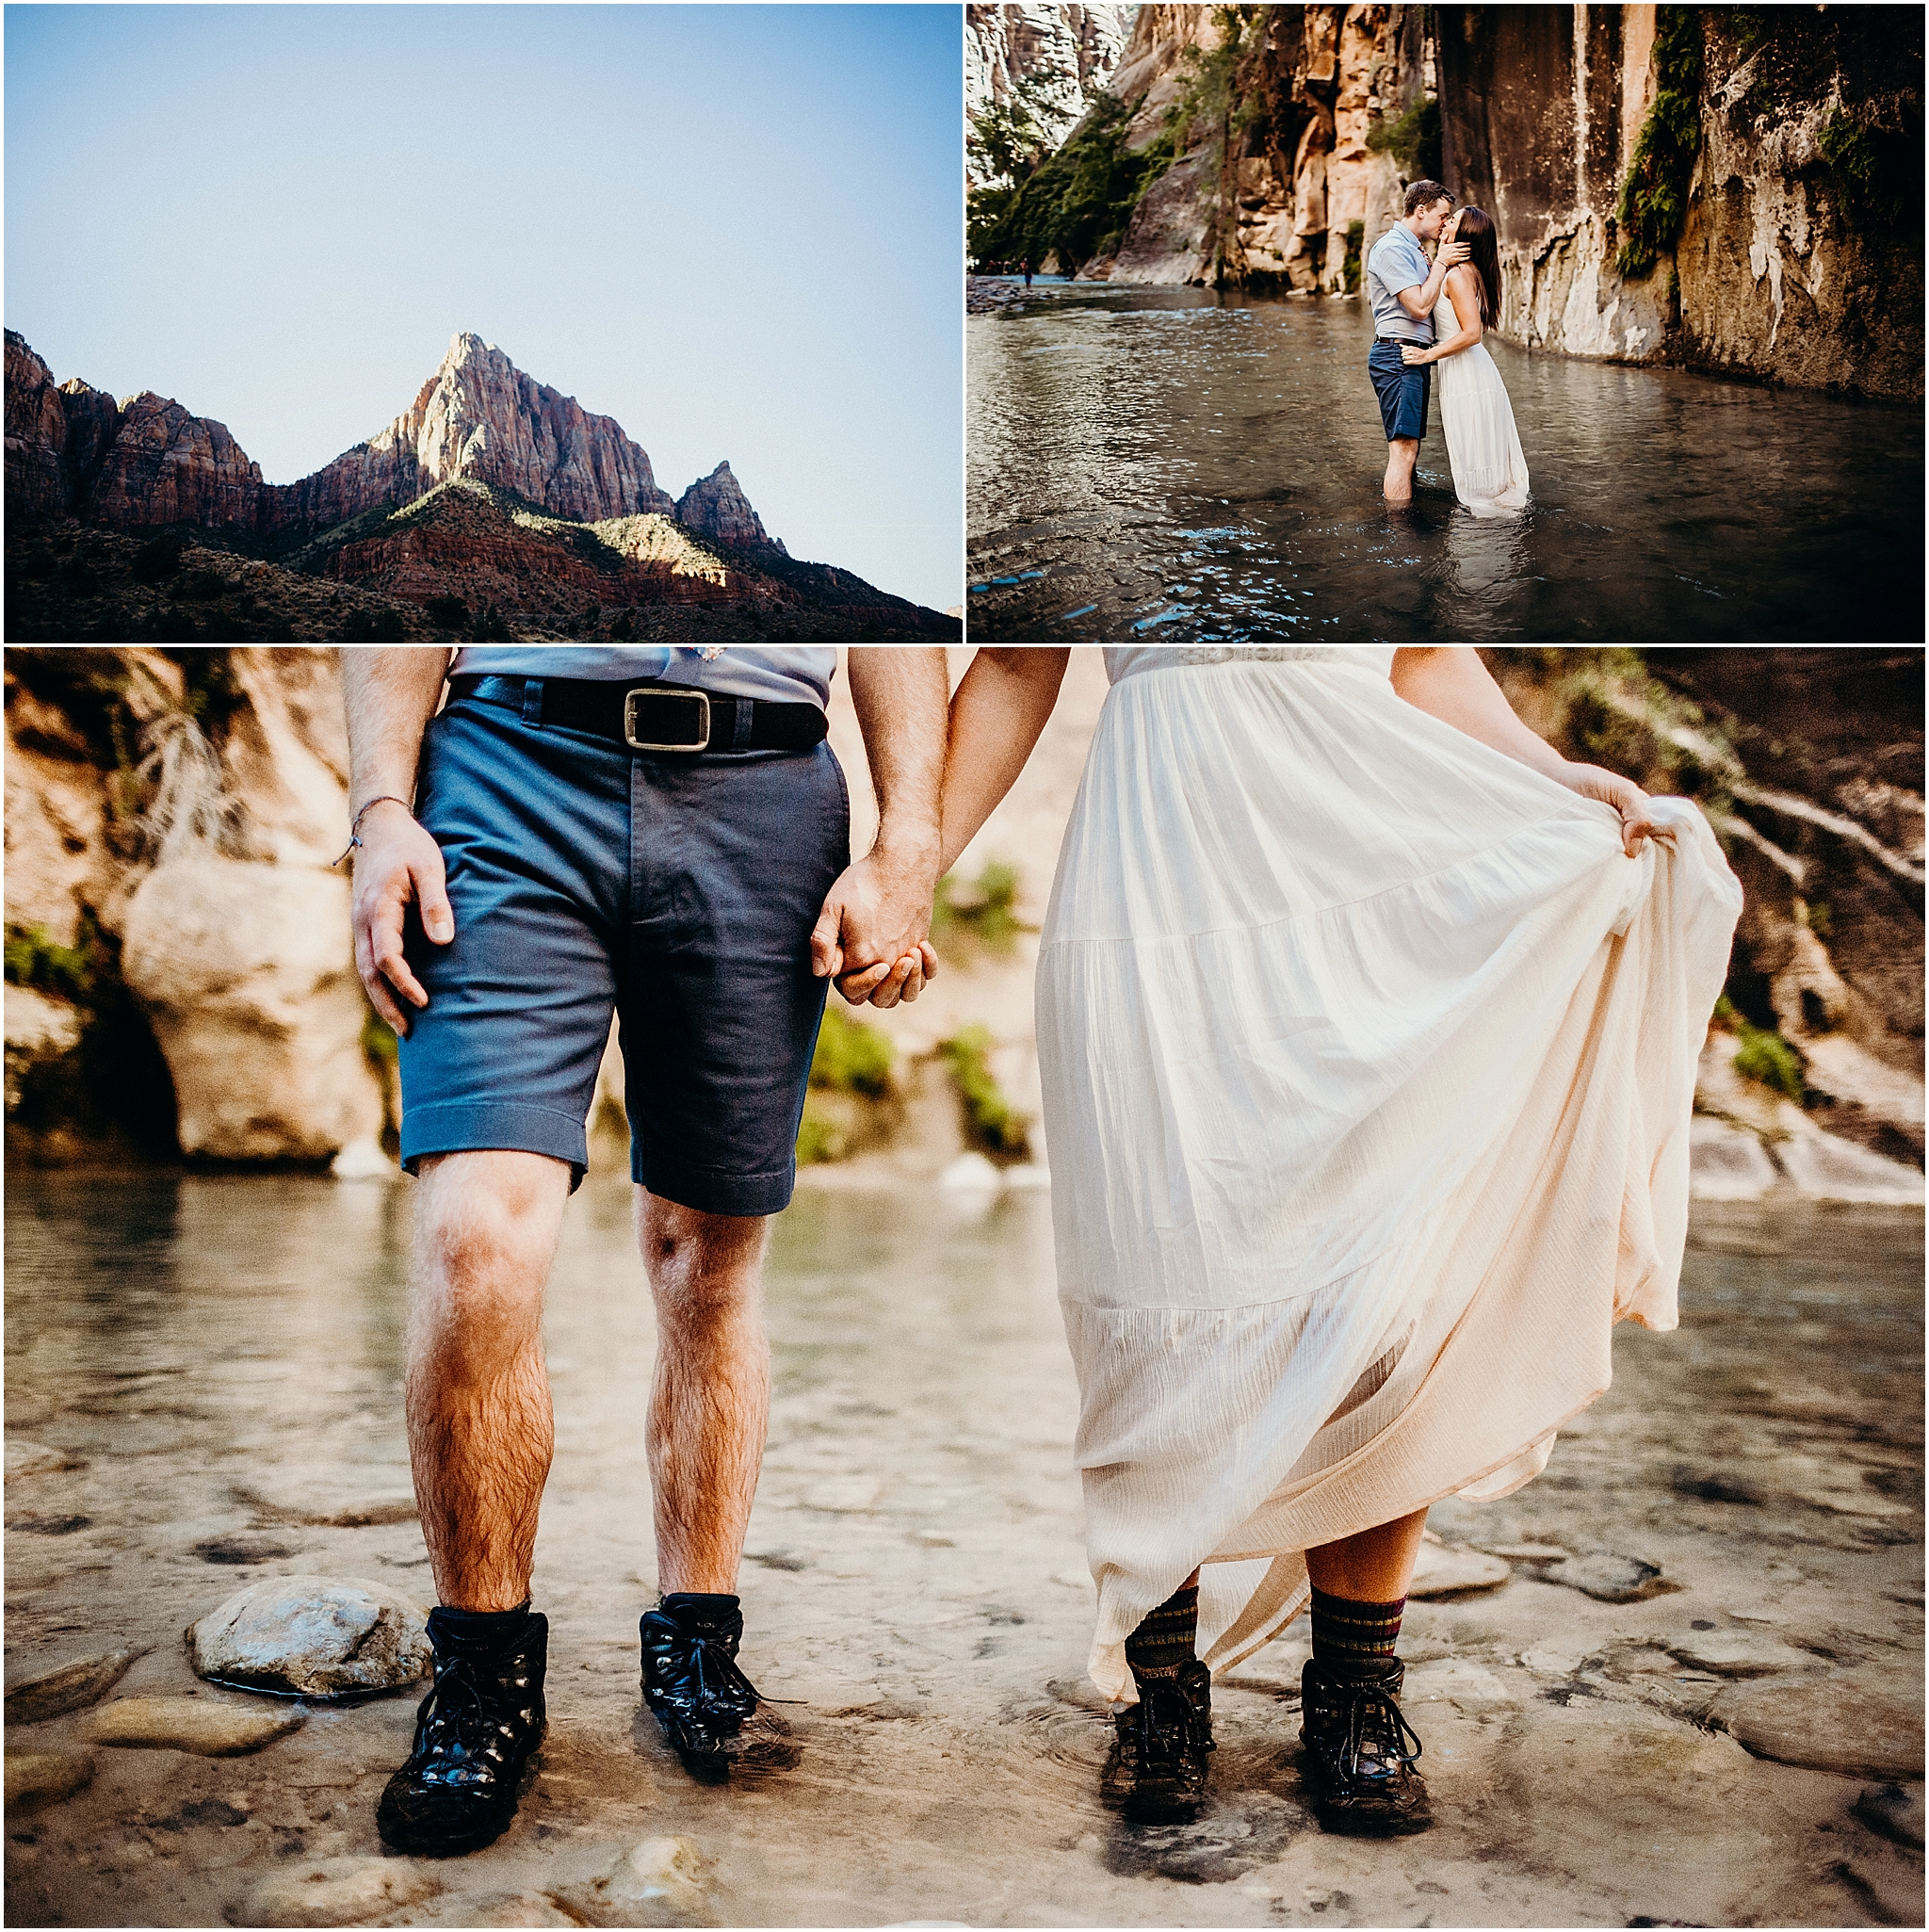 zion national park adventure engagement session zion portraits utah photographer arizona photographer 4.jpg